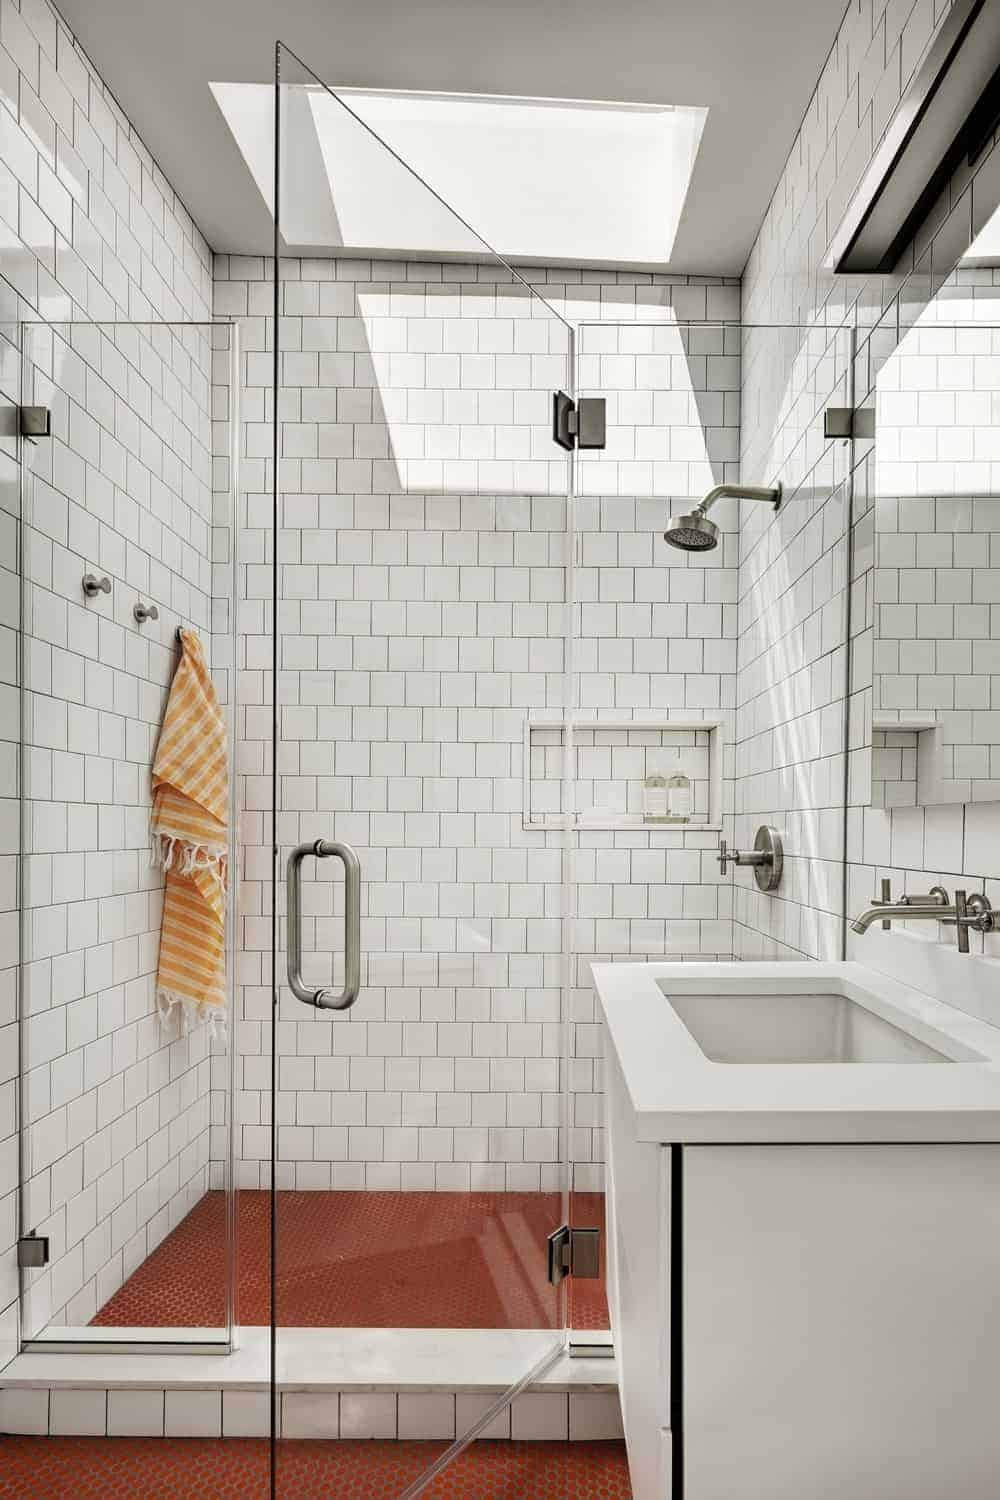 Classic bathroom with sleek sink vanity and walk-in shower surrounded by white tiled walls and glass enclosure. Red hex flooring adds a nice striking contrast to the white bathroom.